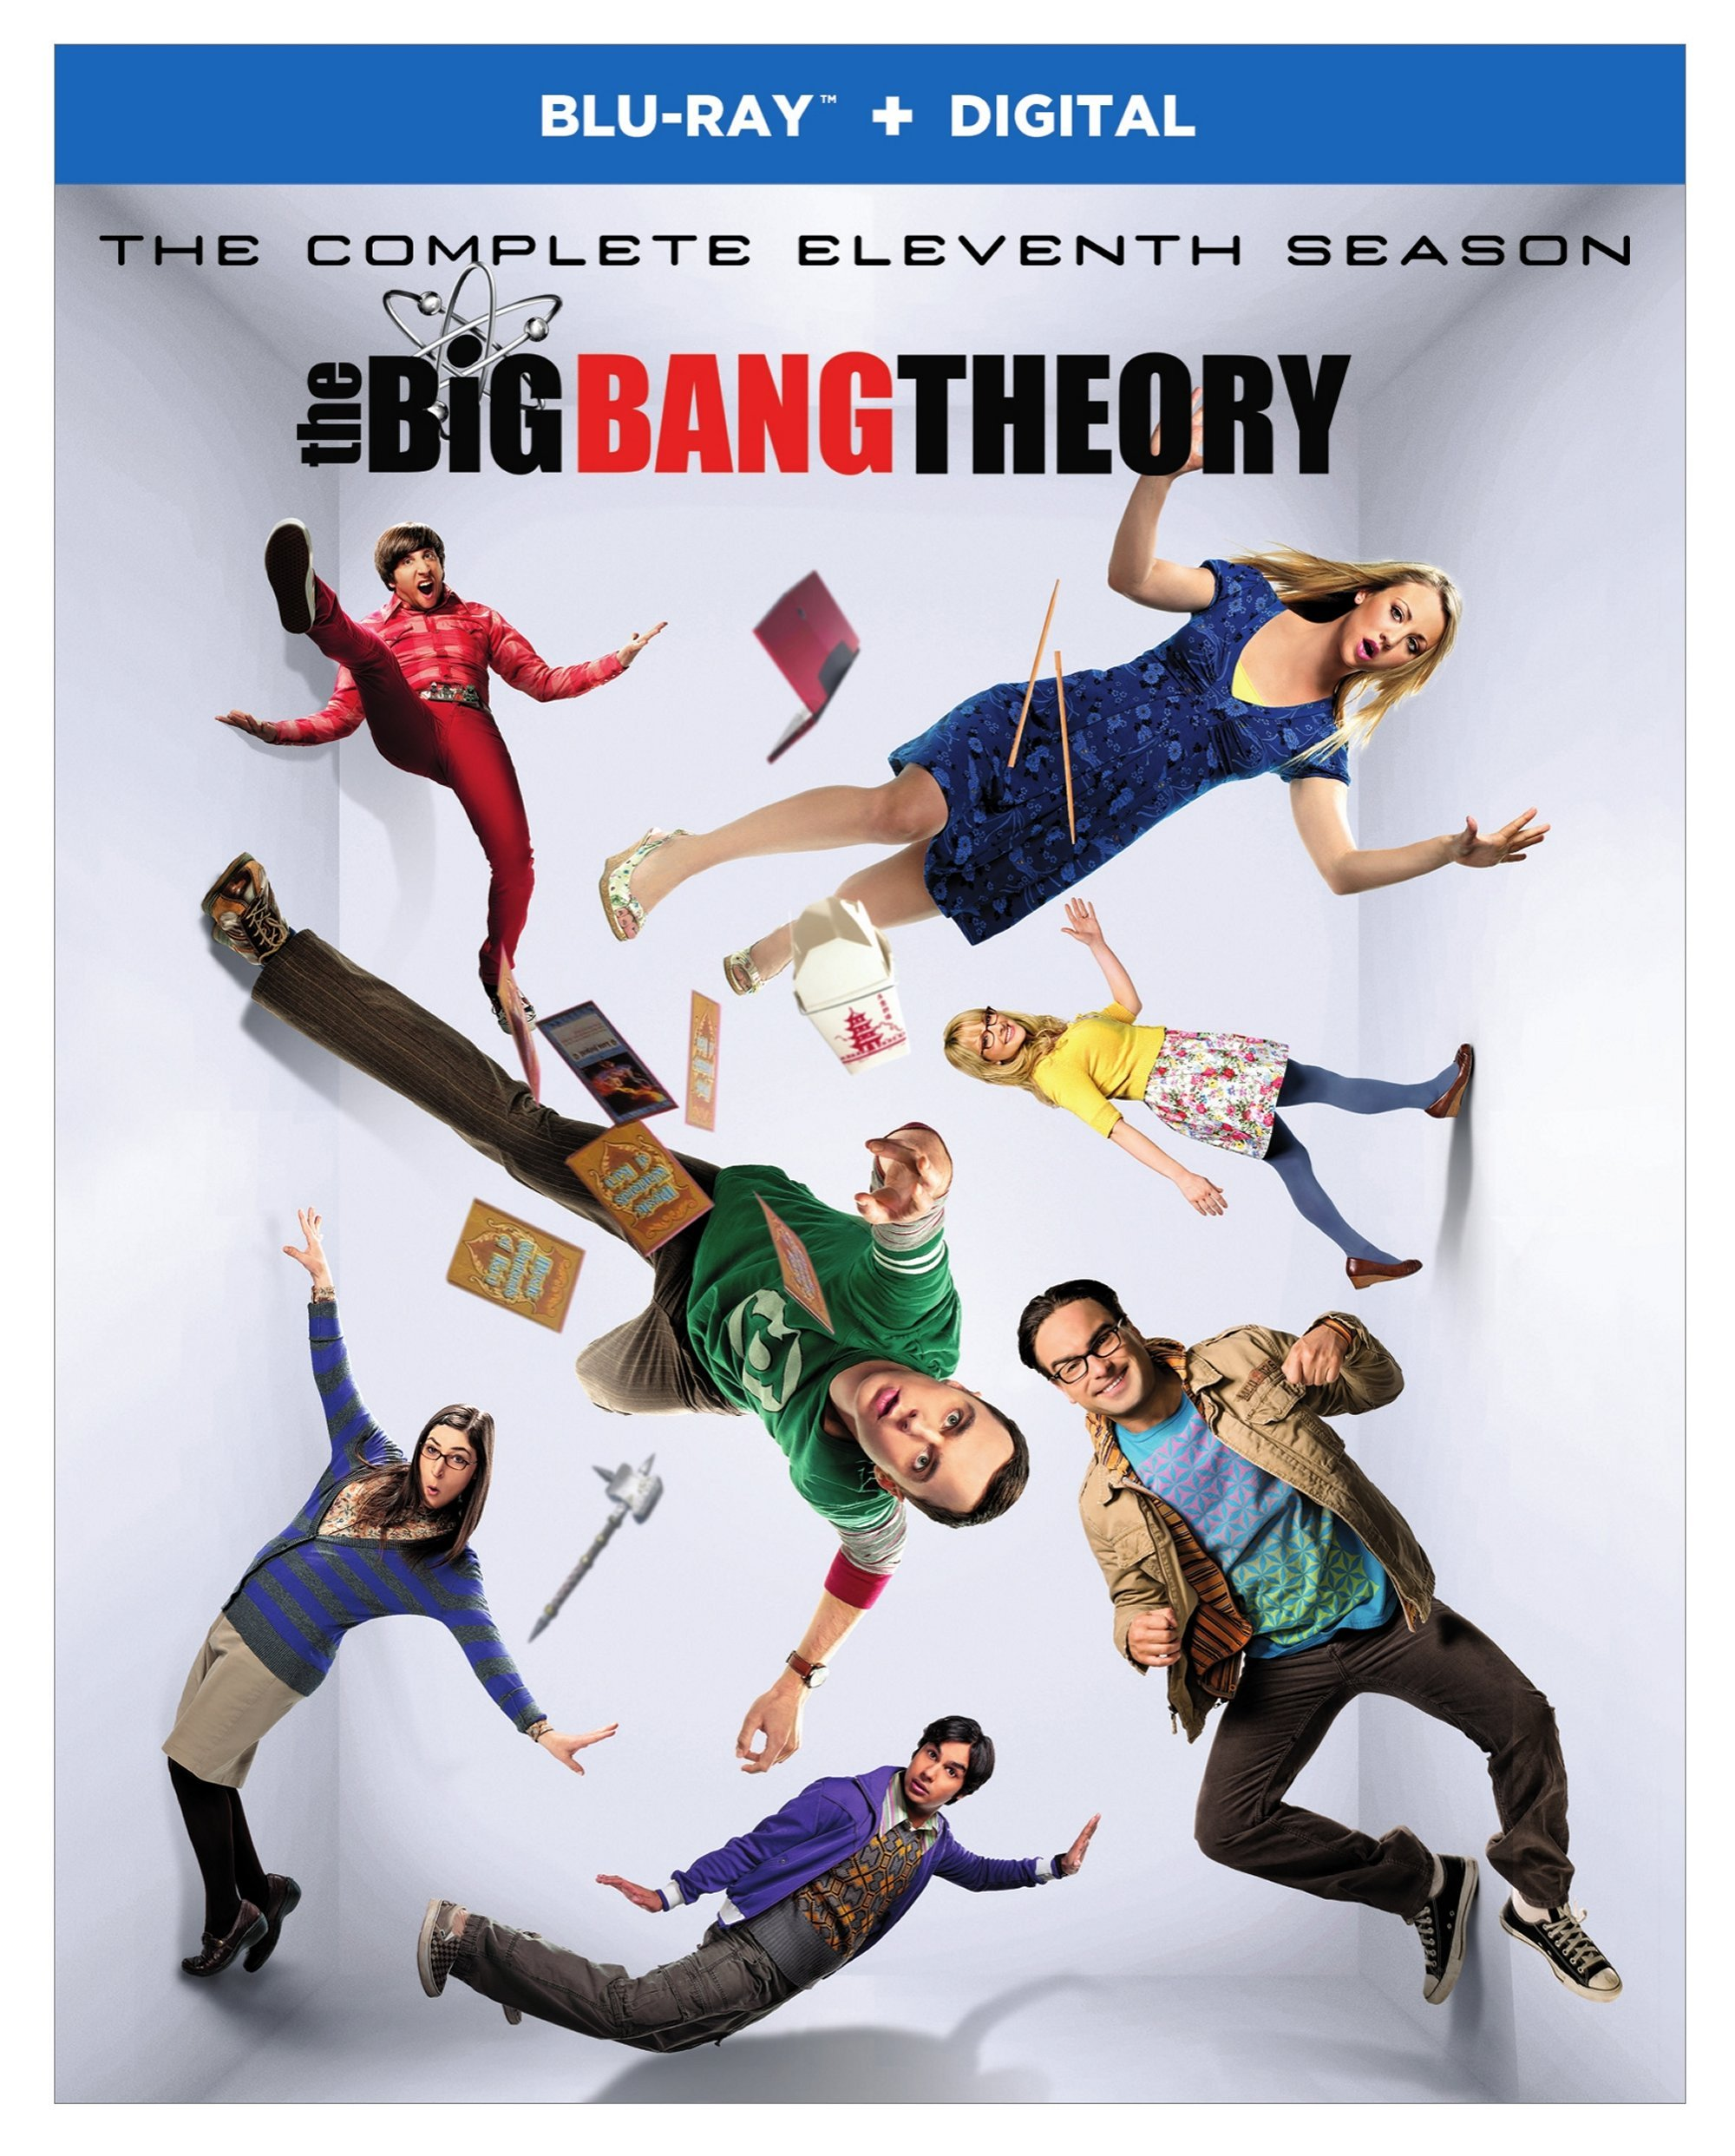 The Big Bang Theory: The Complete Eleventh Season (BD) [Blu-ray] by WarnerBrothers